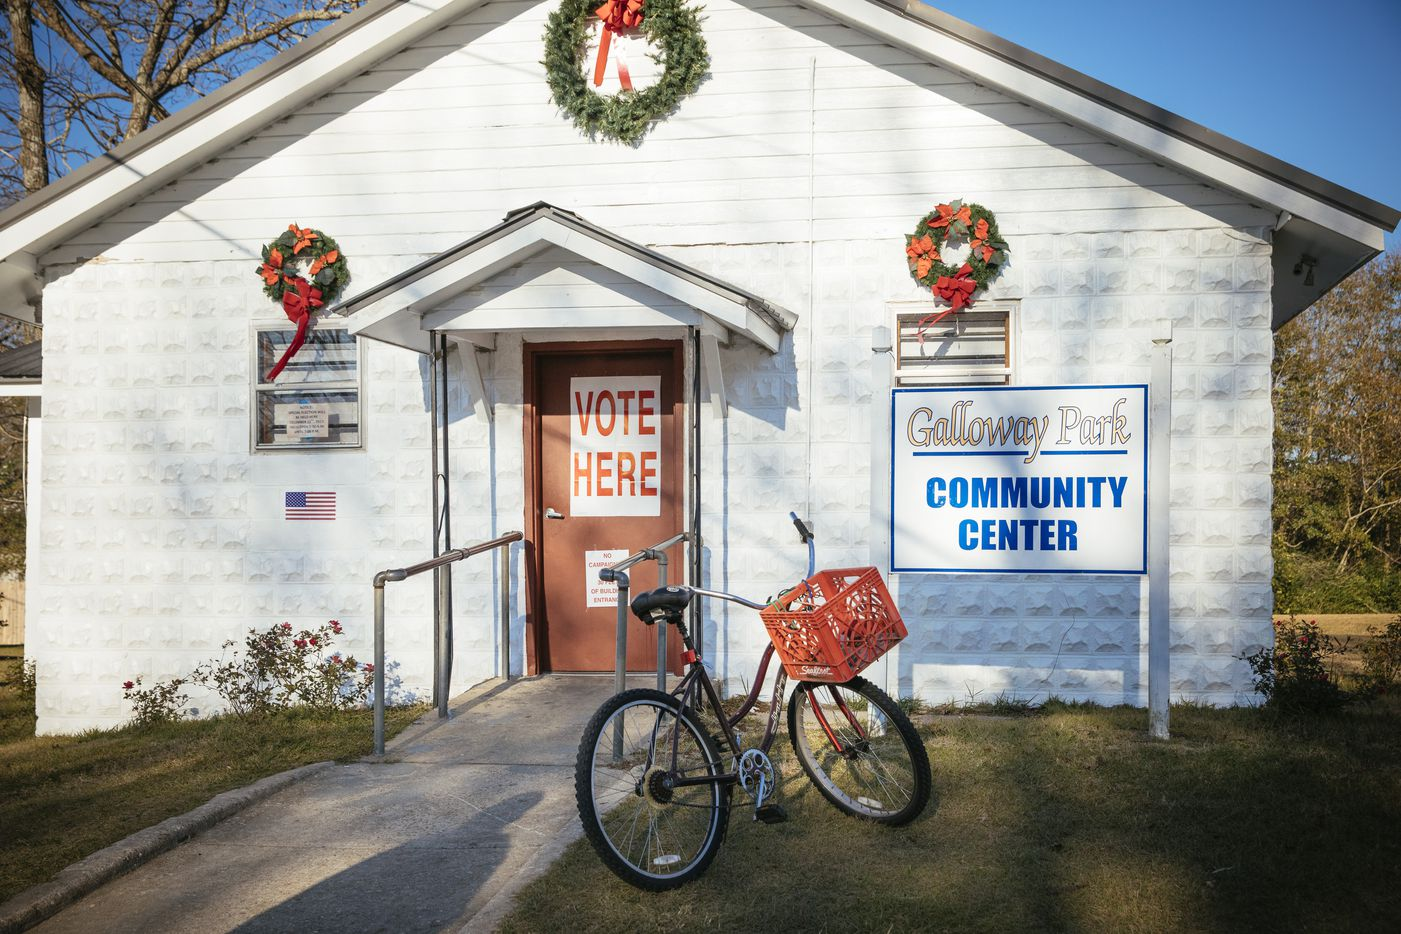 The polling place at Galloway Park Community Center in Brundidge, Ala., Dec. 12, 2017. Alabama voters went to the polls Tuesday to decide between Roy Moore, a Republican, and Doug Jones, a Democrat, in a special Senate election destined to be remembered as a strange and ugly campaign carrying immense political implications. (Audra Melton/The New York Times)